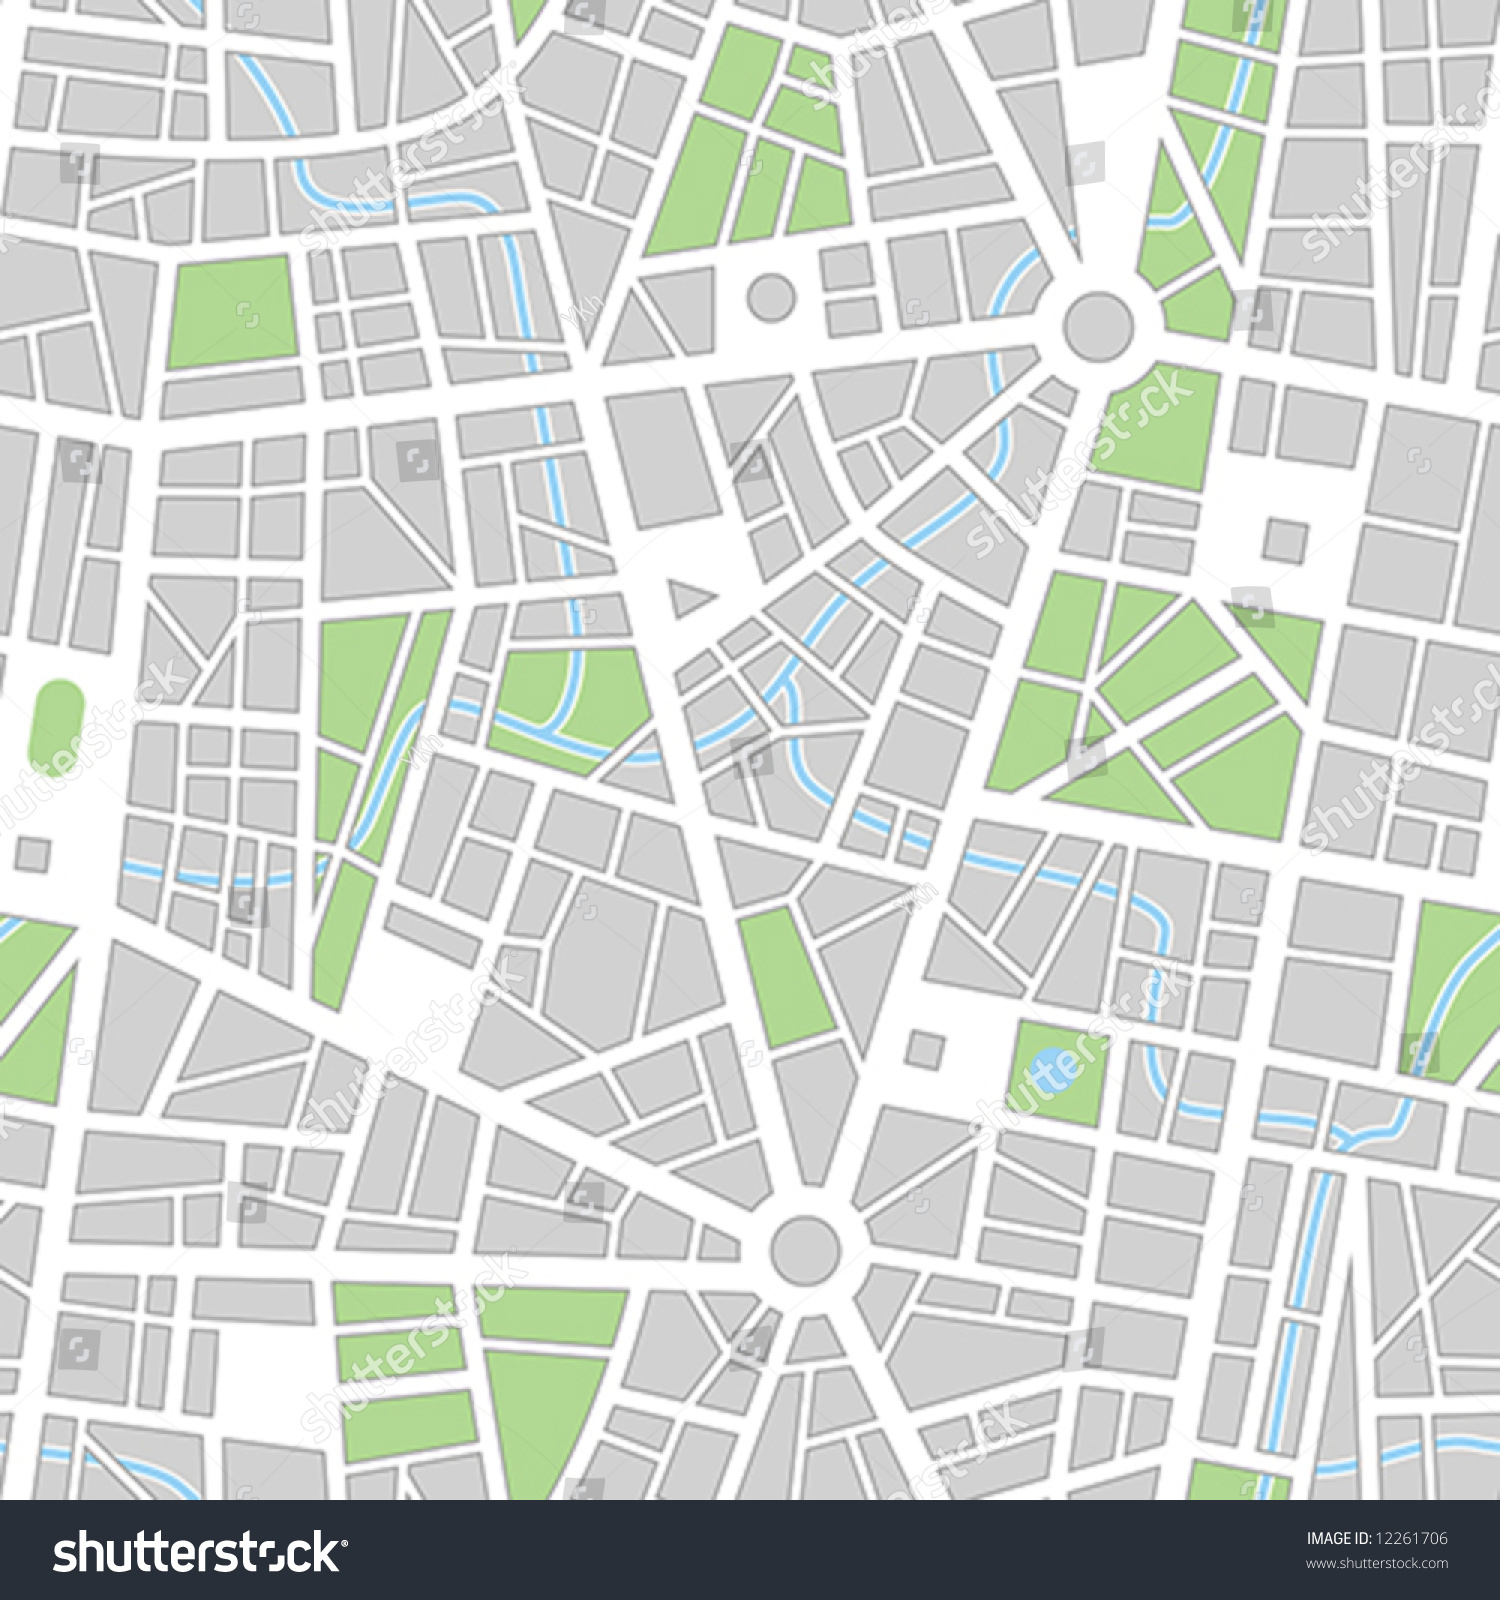 City Map Seamless Vector Wallpaper All Elements And Road Template Blank Street Printable